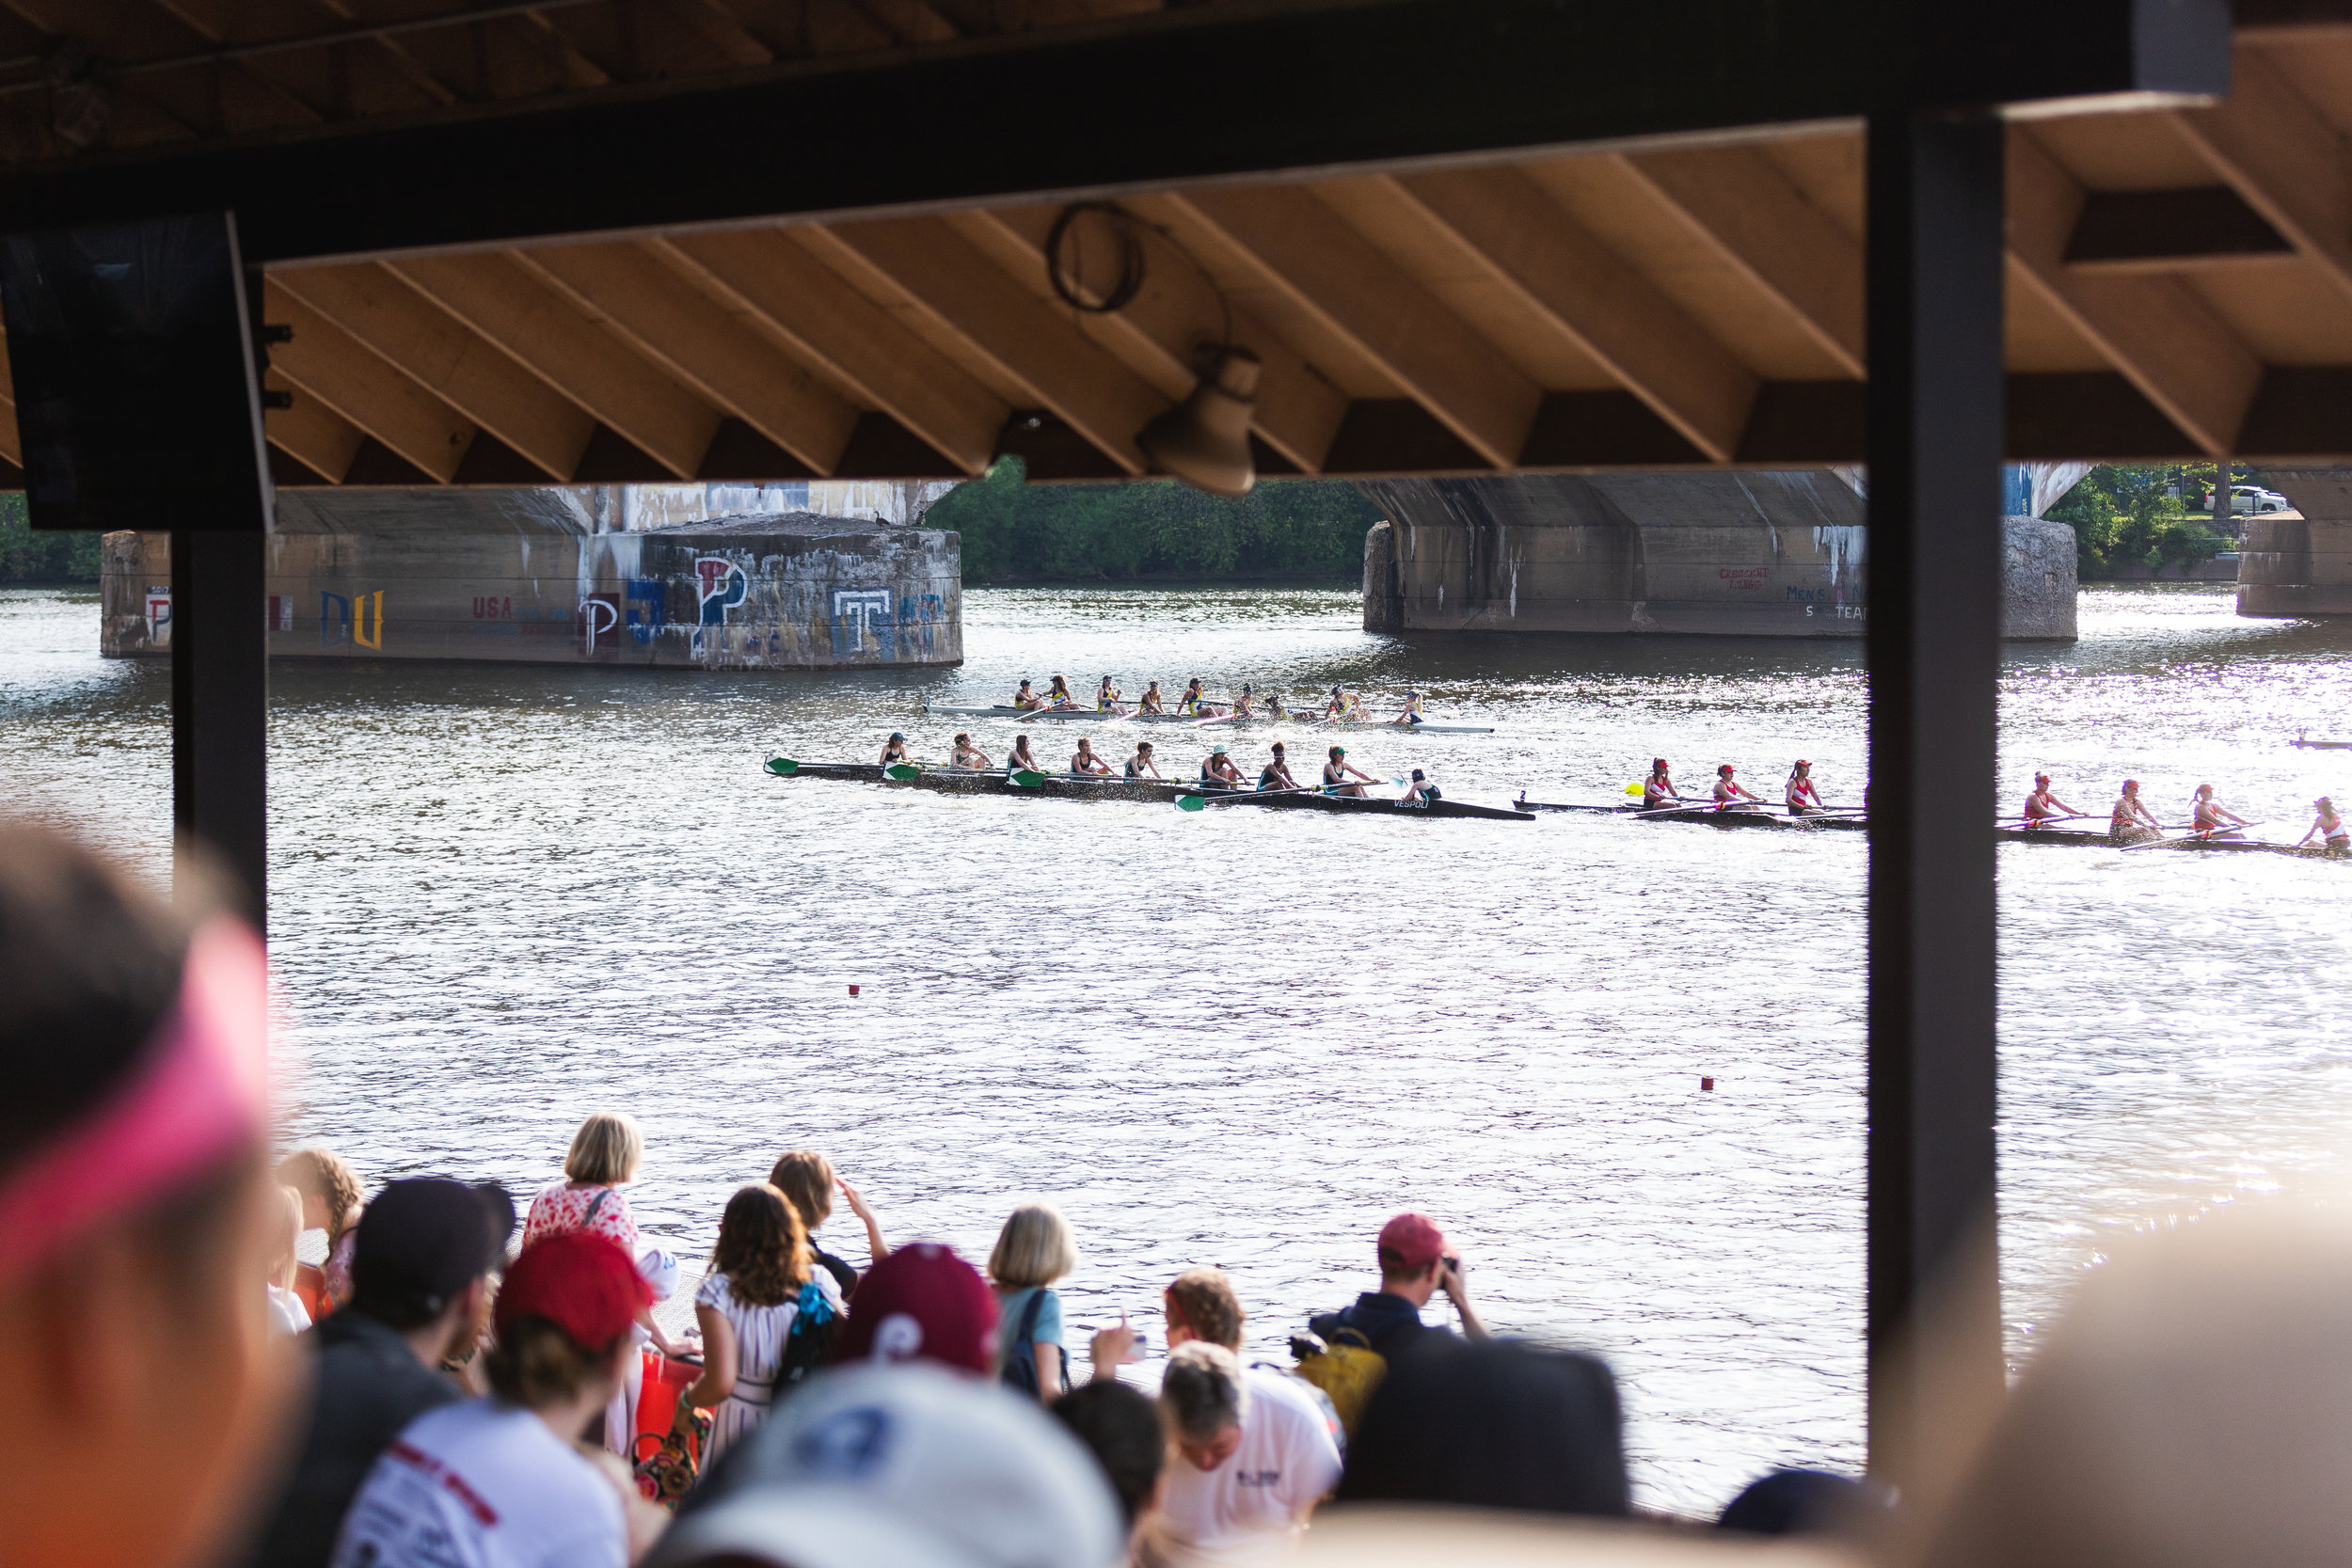 2019_STOTESBURY REGATTA_EVENTS_THE PHILLY CHECKLIST-19.jpg